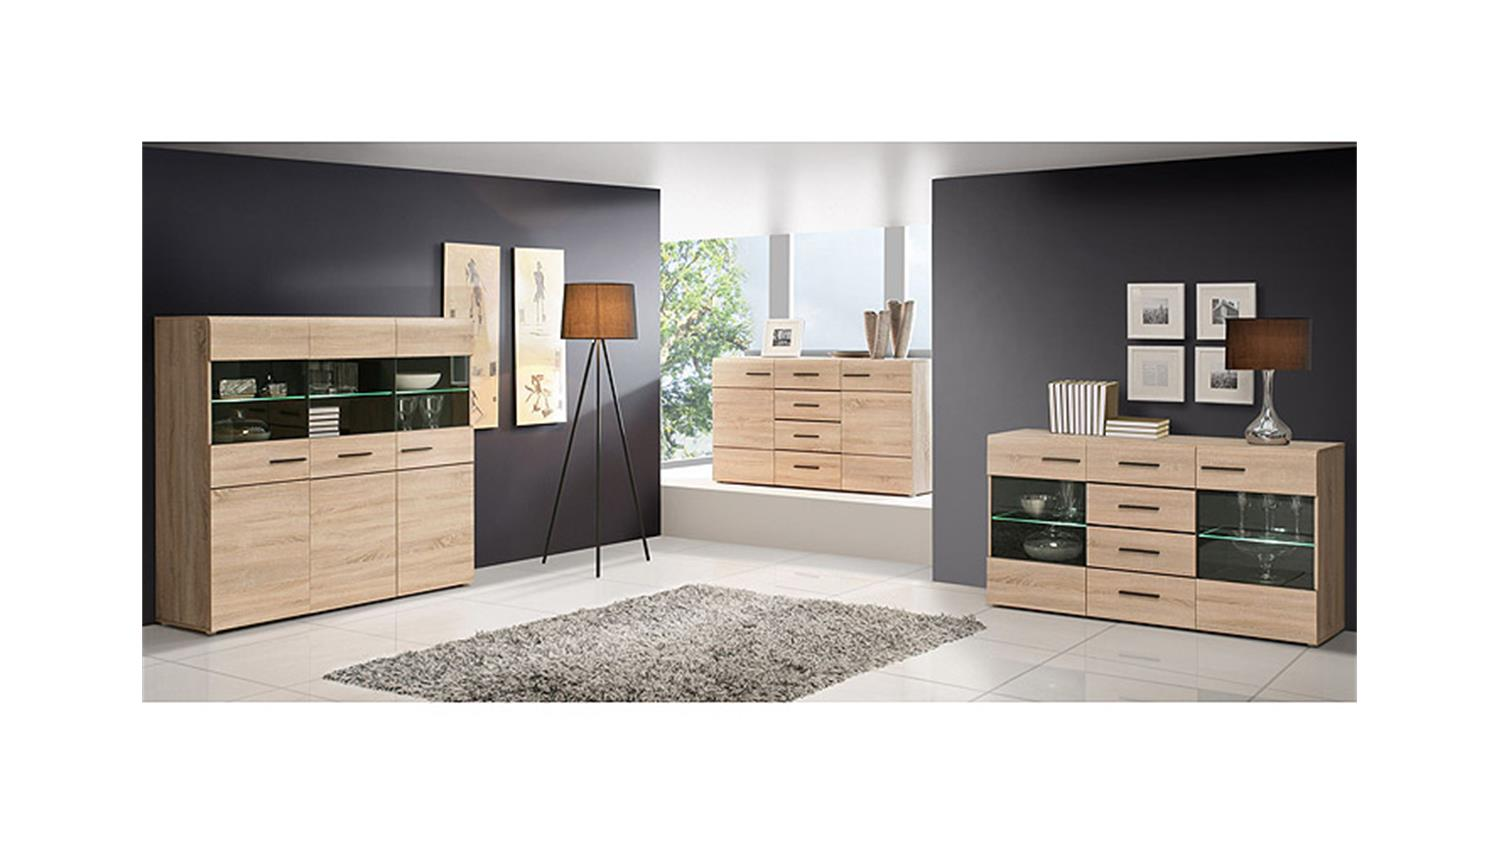 sideboard combino sonoma denver eiche wenge. Black Bedroom Furniture Sets. Home Design Ideas